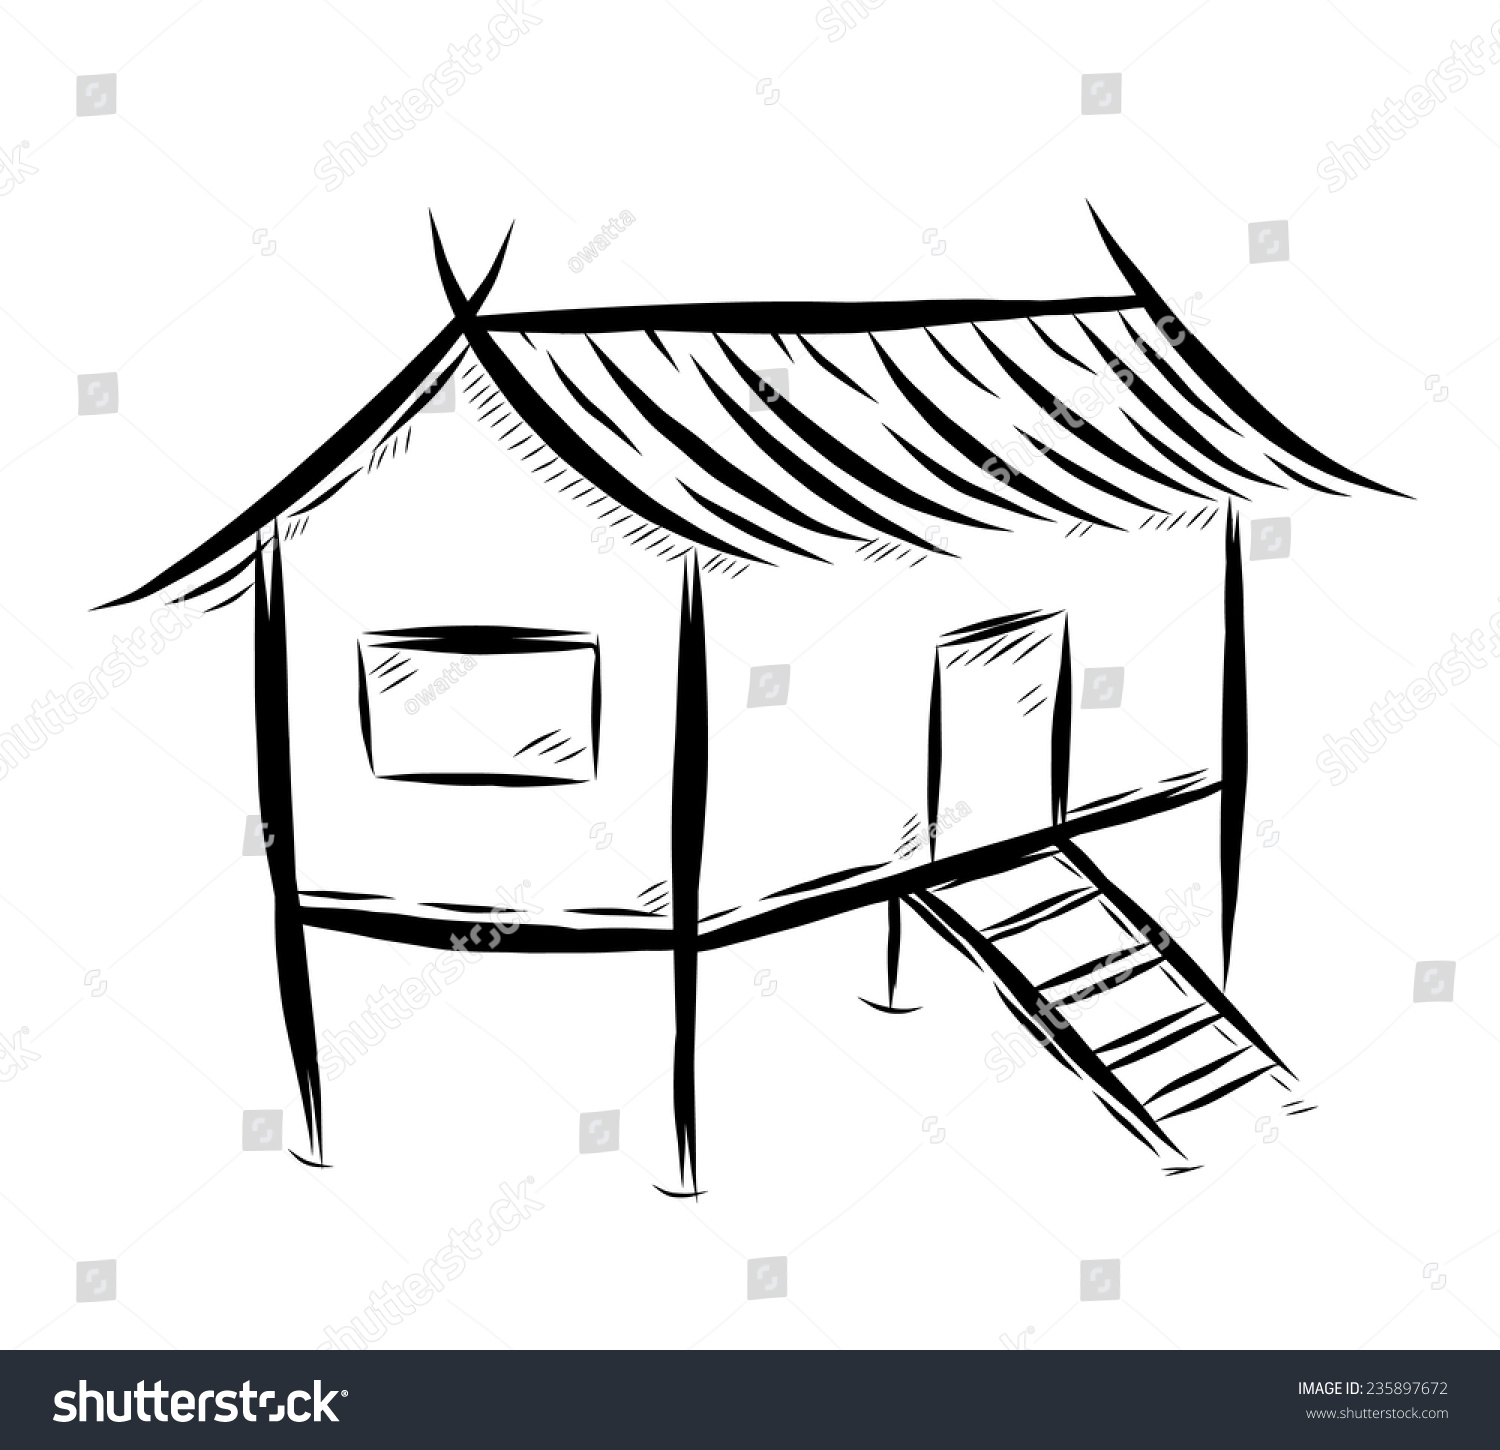 straw house coloring page images